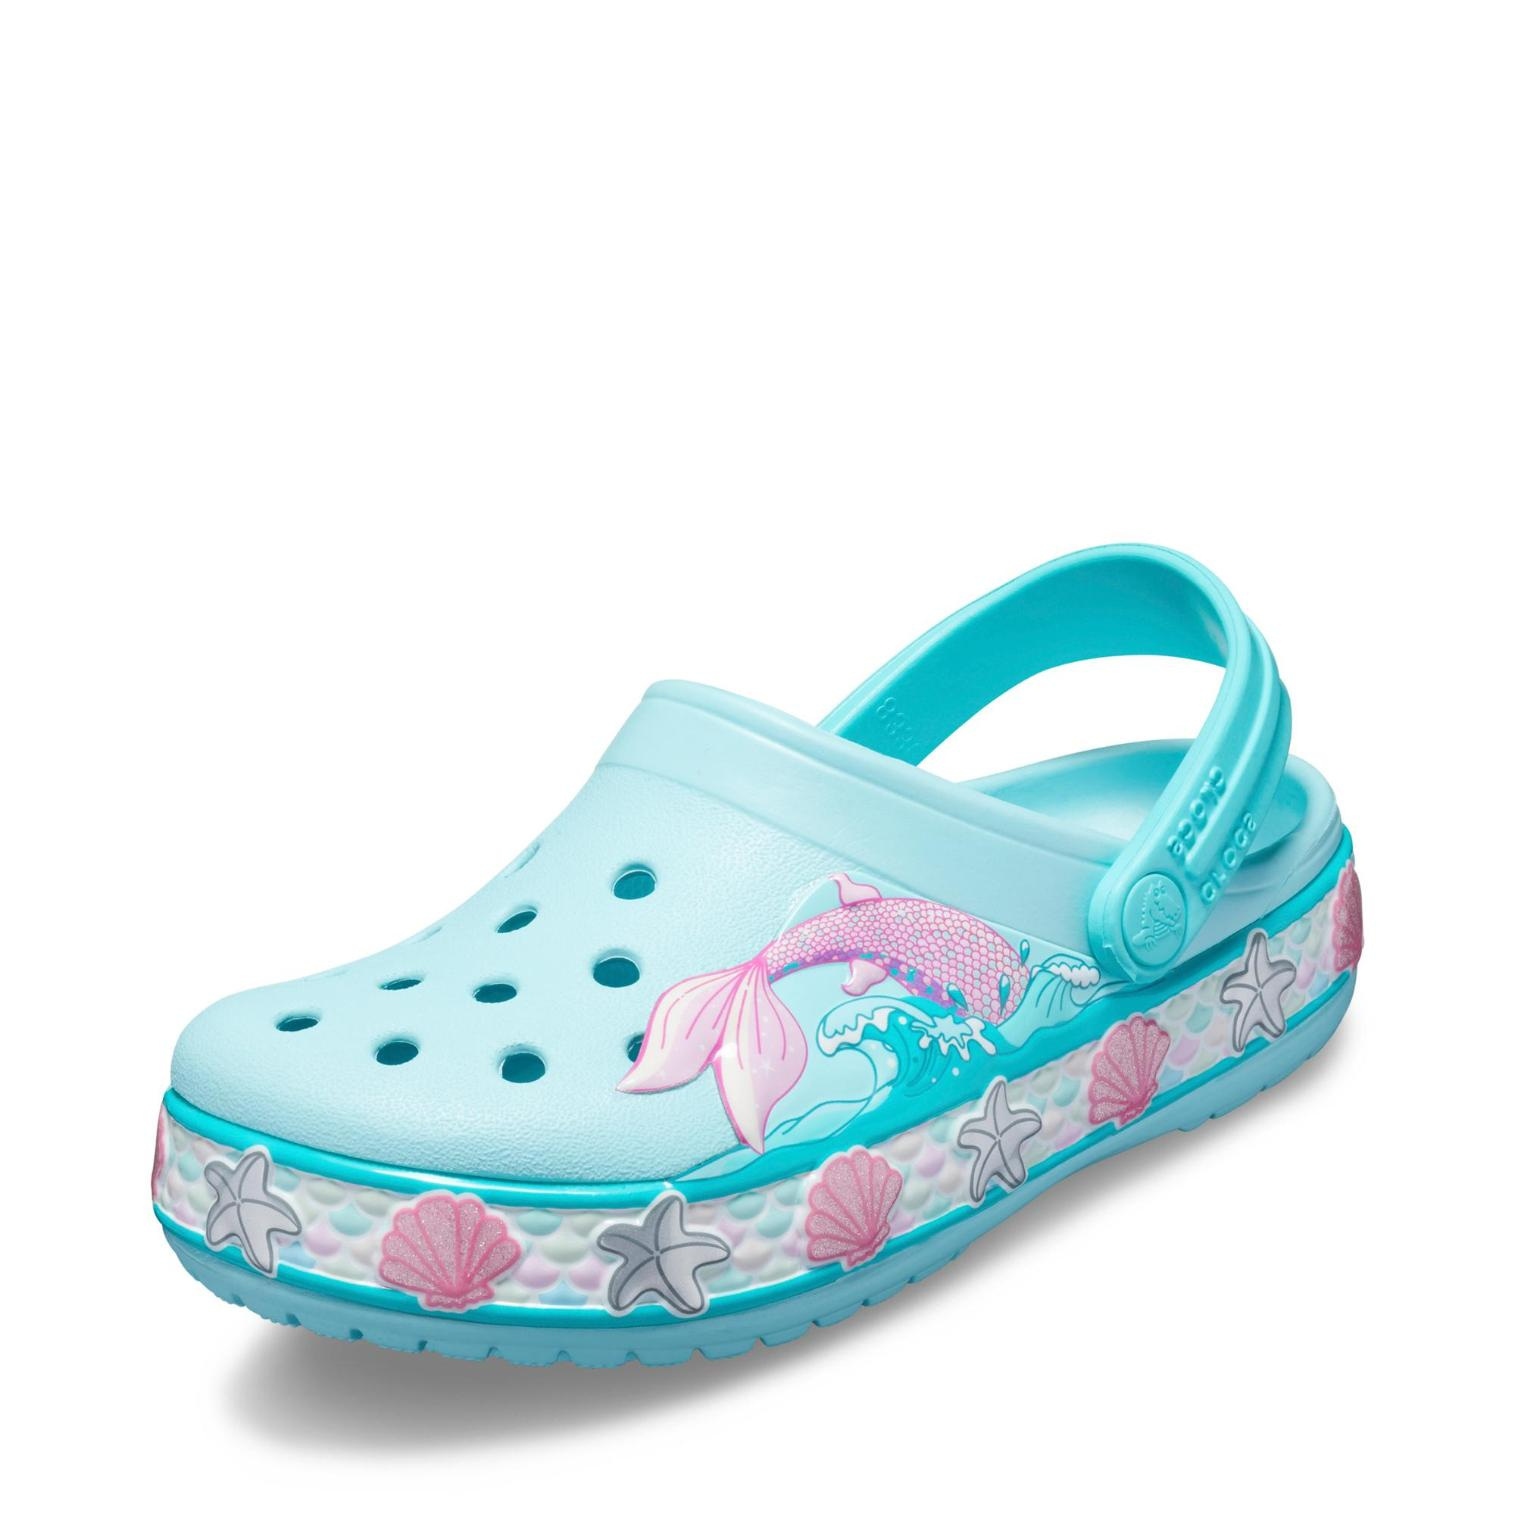 Crocs Mermaid Band Clog in Farbe türkisrosa günstig online